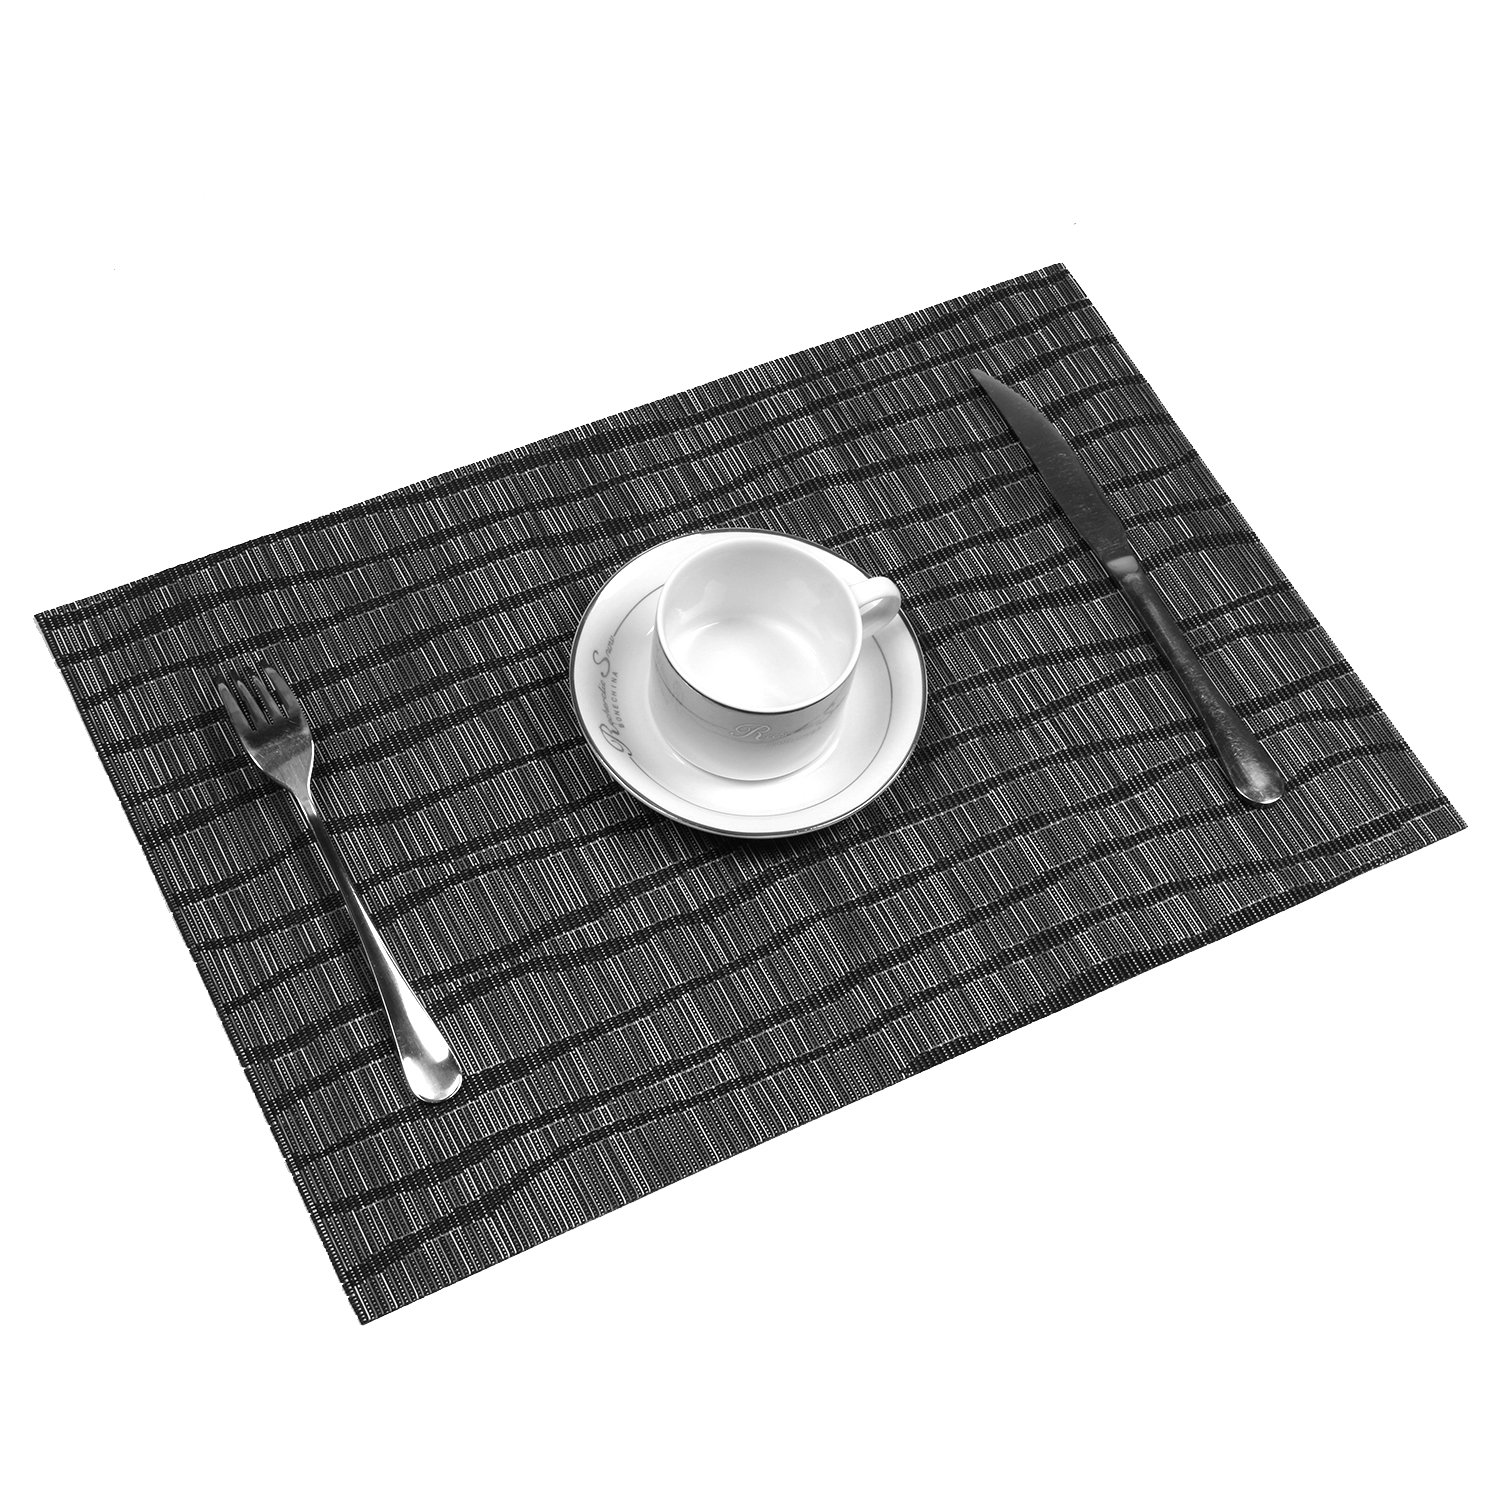 Topotdor Placemats set of 6 PVC Non-slip Insulation Stain-resistant vertical stripes Placemats for Home, Kitchen,Office and Outdoor (Set of 6, Black) by Topotdor (Image #3)